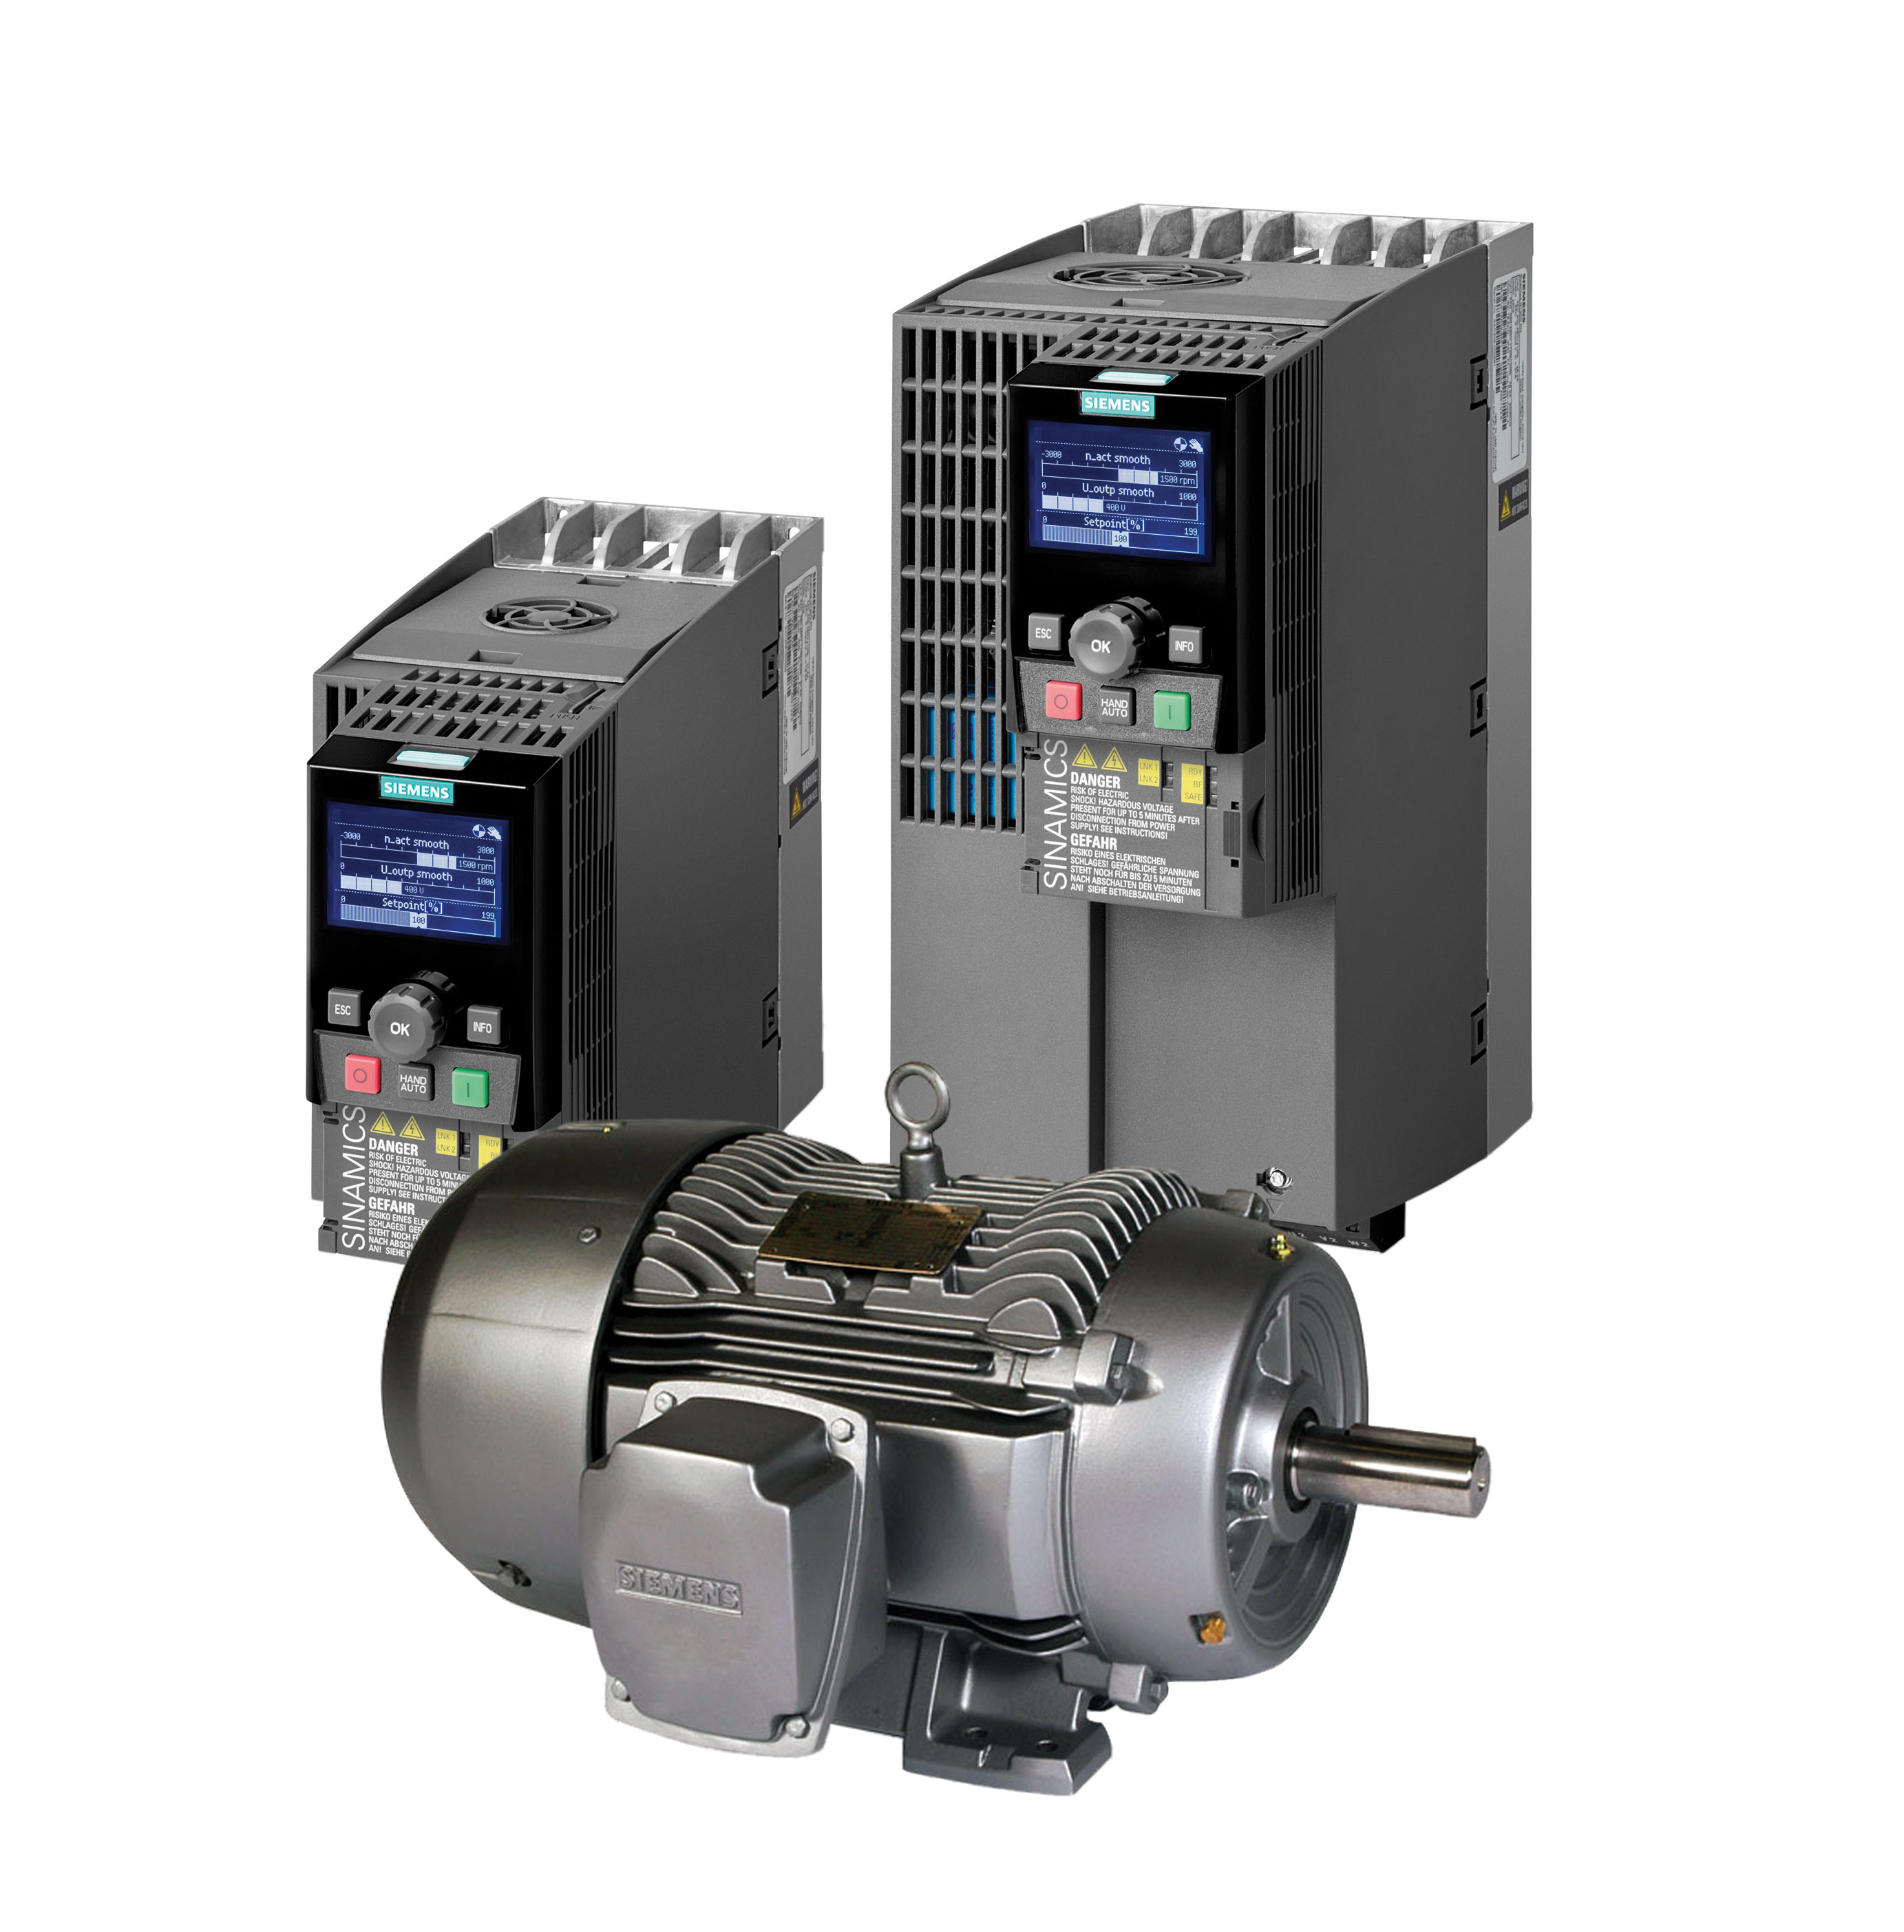 Siemens Introduces Matched Motor Drive Combination Package